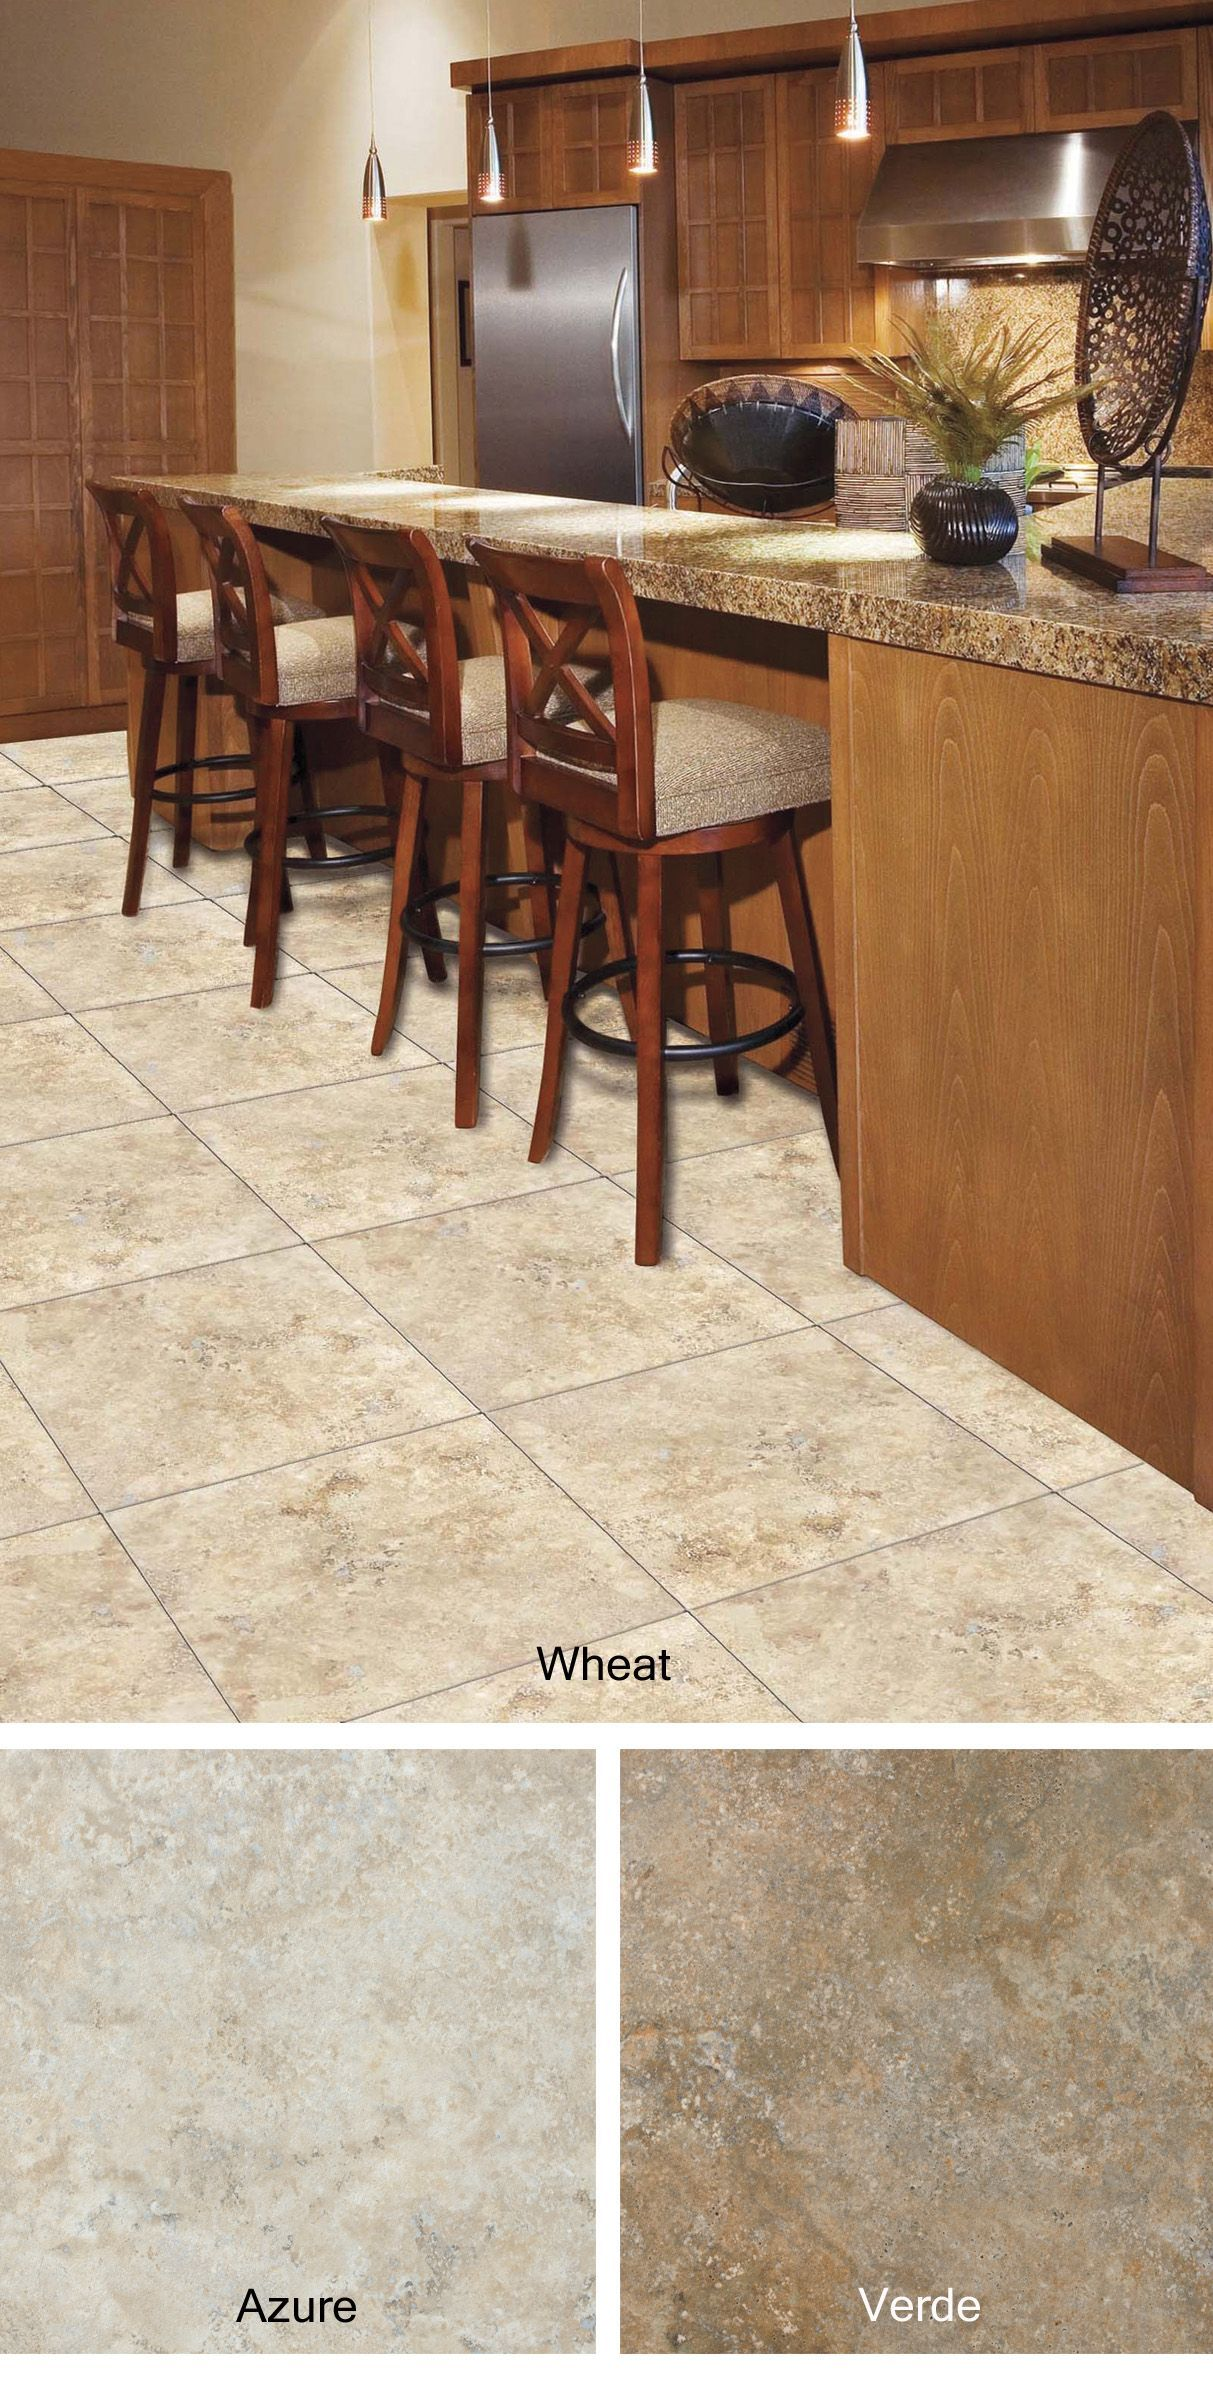 Different Designs For Your Floor Using Ceramics Vinyl Flooring